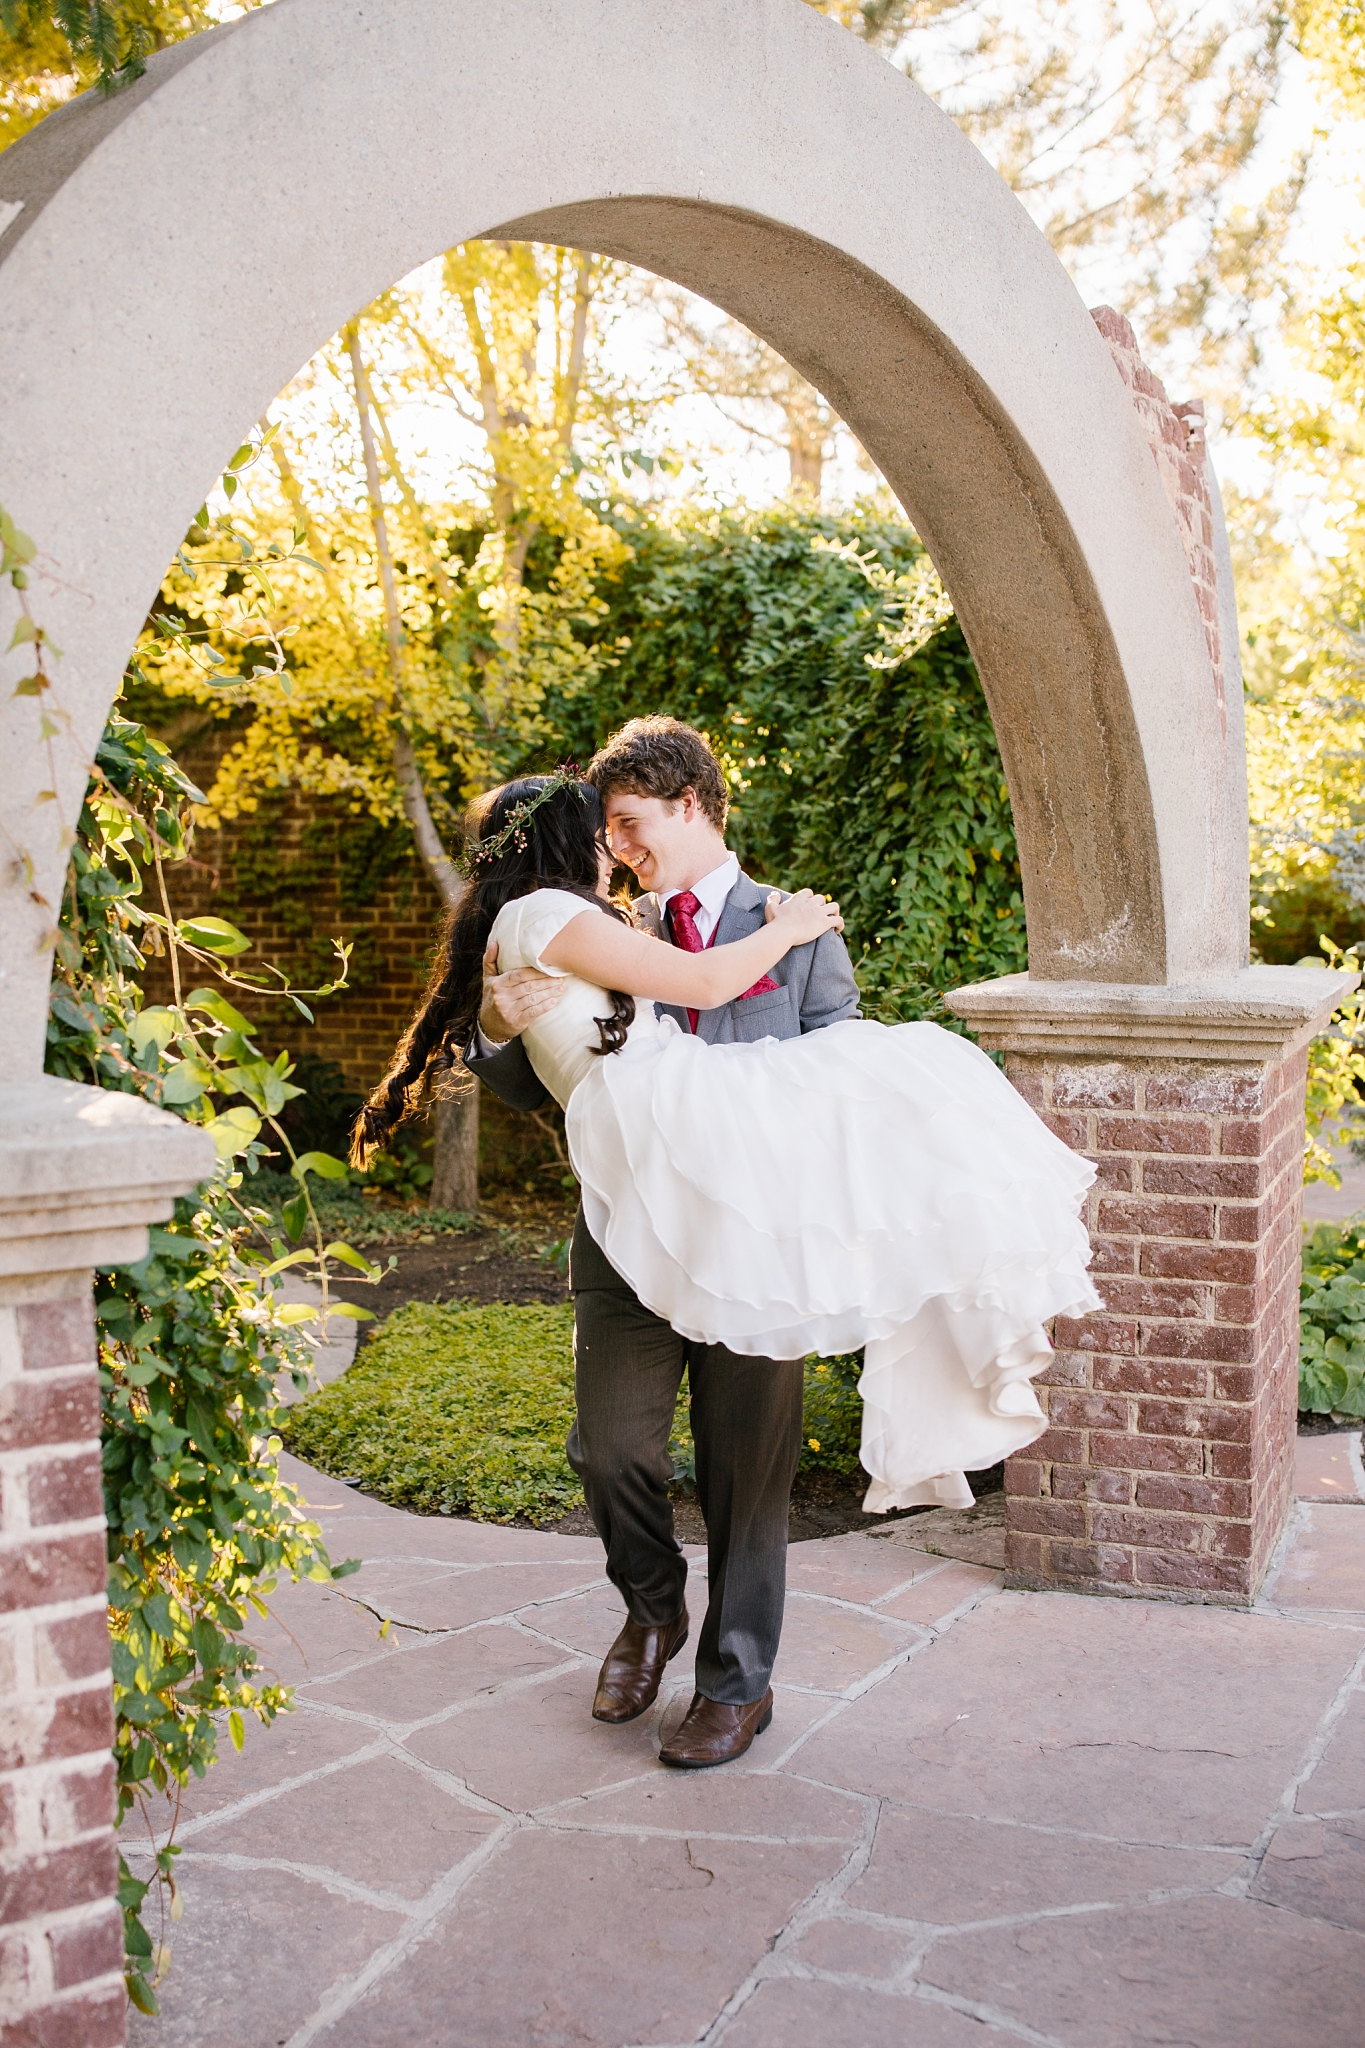 JB-Bridals-13_Lizzie-B-Imagery-Utah-Wedding-Photographer-Thanksgiving-Point-Ashton-Gardens-Lehi-Utah.jpg